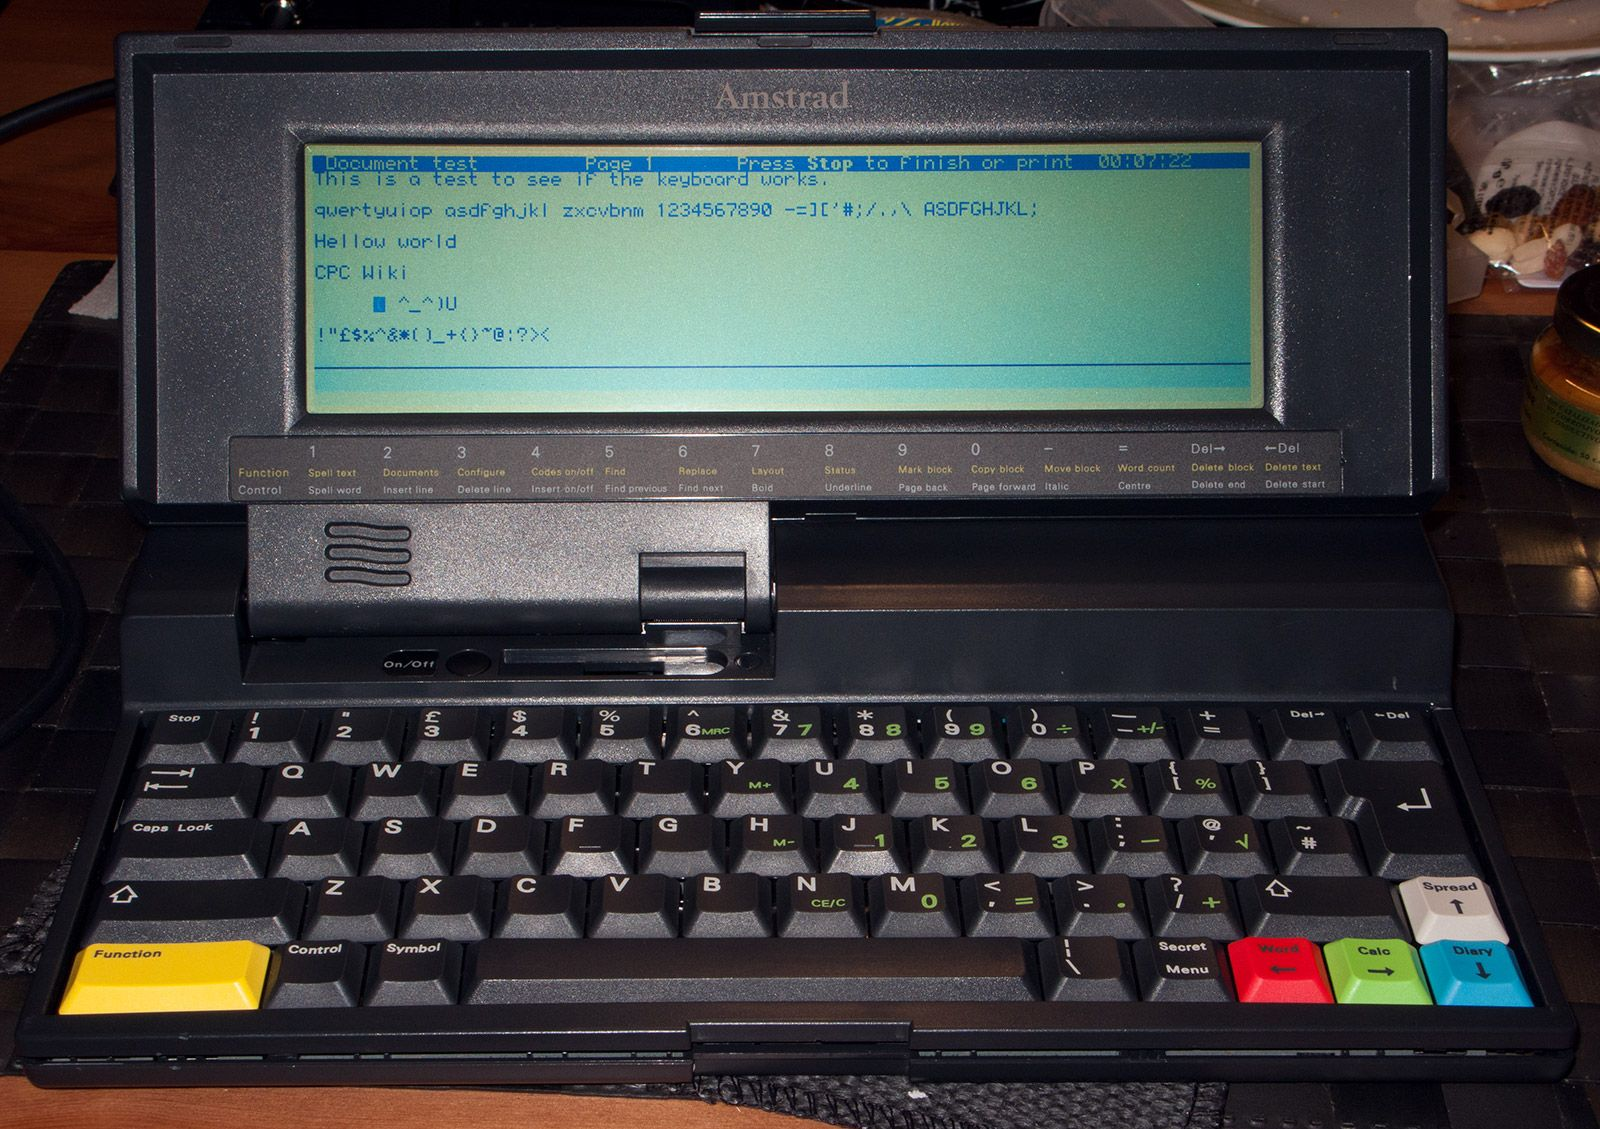 thest of the Amstrad Notepad NC200 keyboard